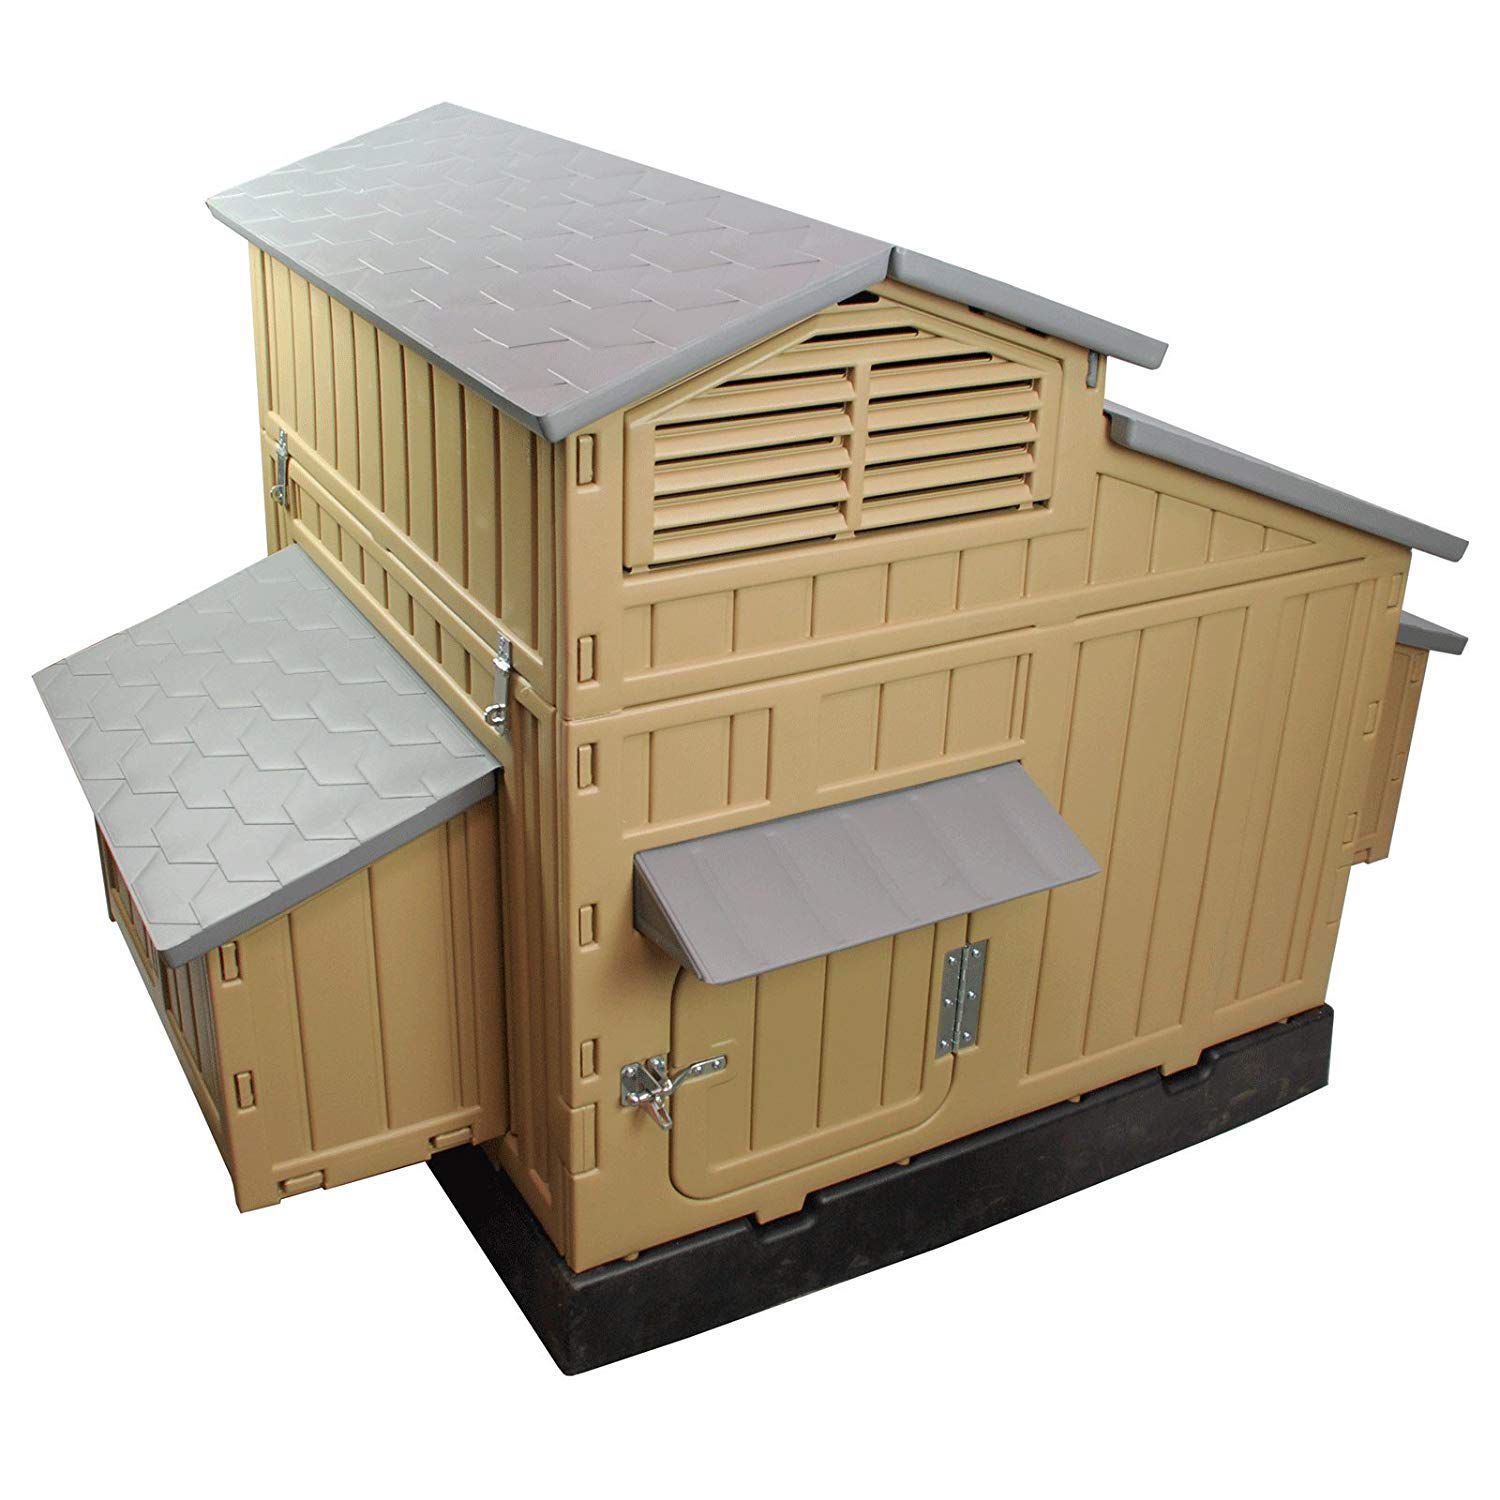 SnapLock Formex Large Chicken Coop Backyard Hen